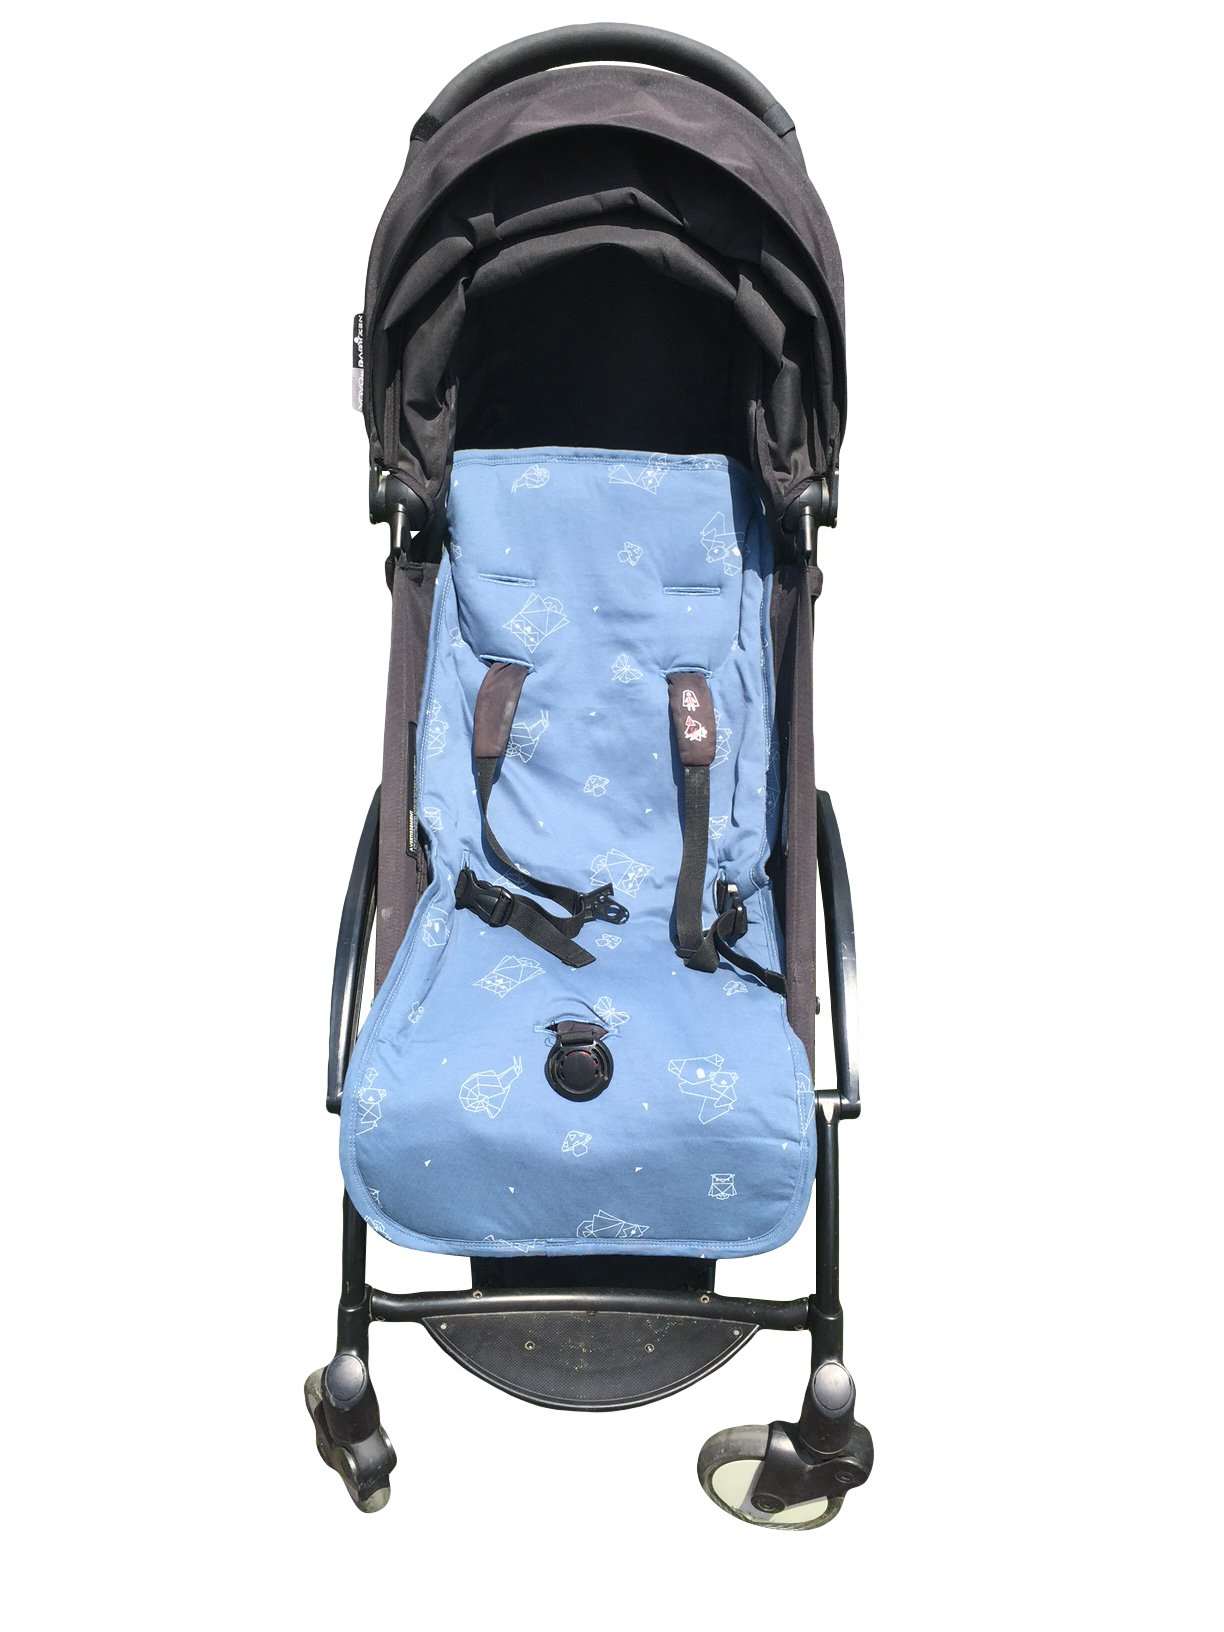 Organic Cotton Stroller Liner - Extra-Soft, Breathable Cover with Soft, Synthetic Fiber Filling. Total Comfort for Baby and Toddler. Machine Washable, 31x15 inches, Indigo Blue